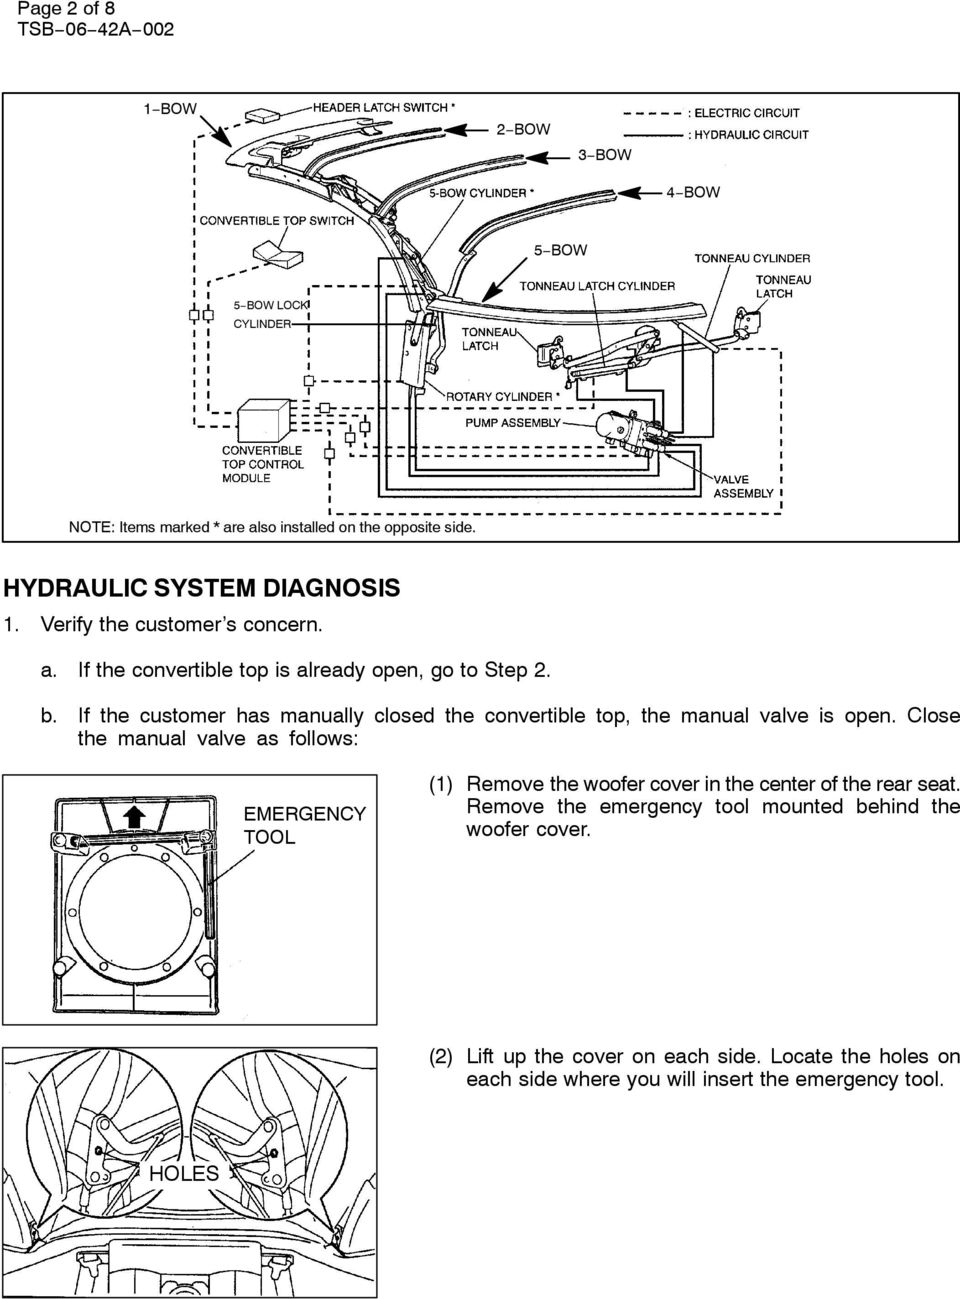 Eclipse Spyder Convertible Top Hydraulic System Diagnosis Pdf O2 Sensor Wiring Diagram If The Customer Has Manually Closed Manual Valve Is Open